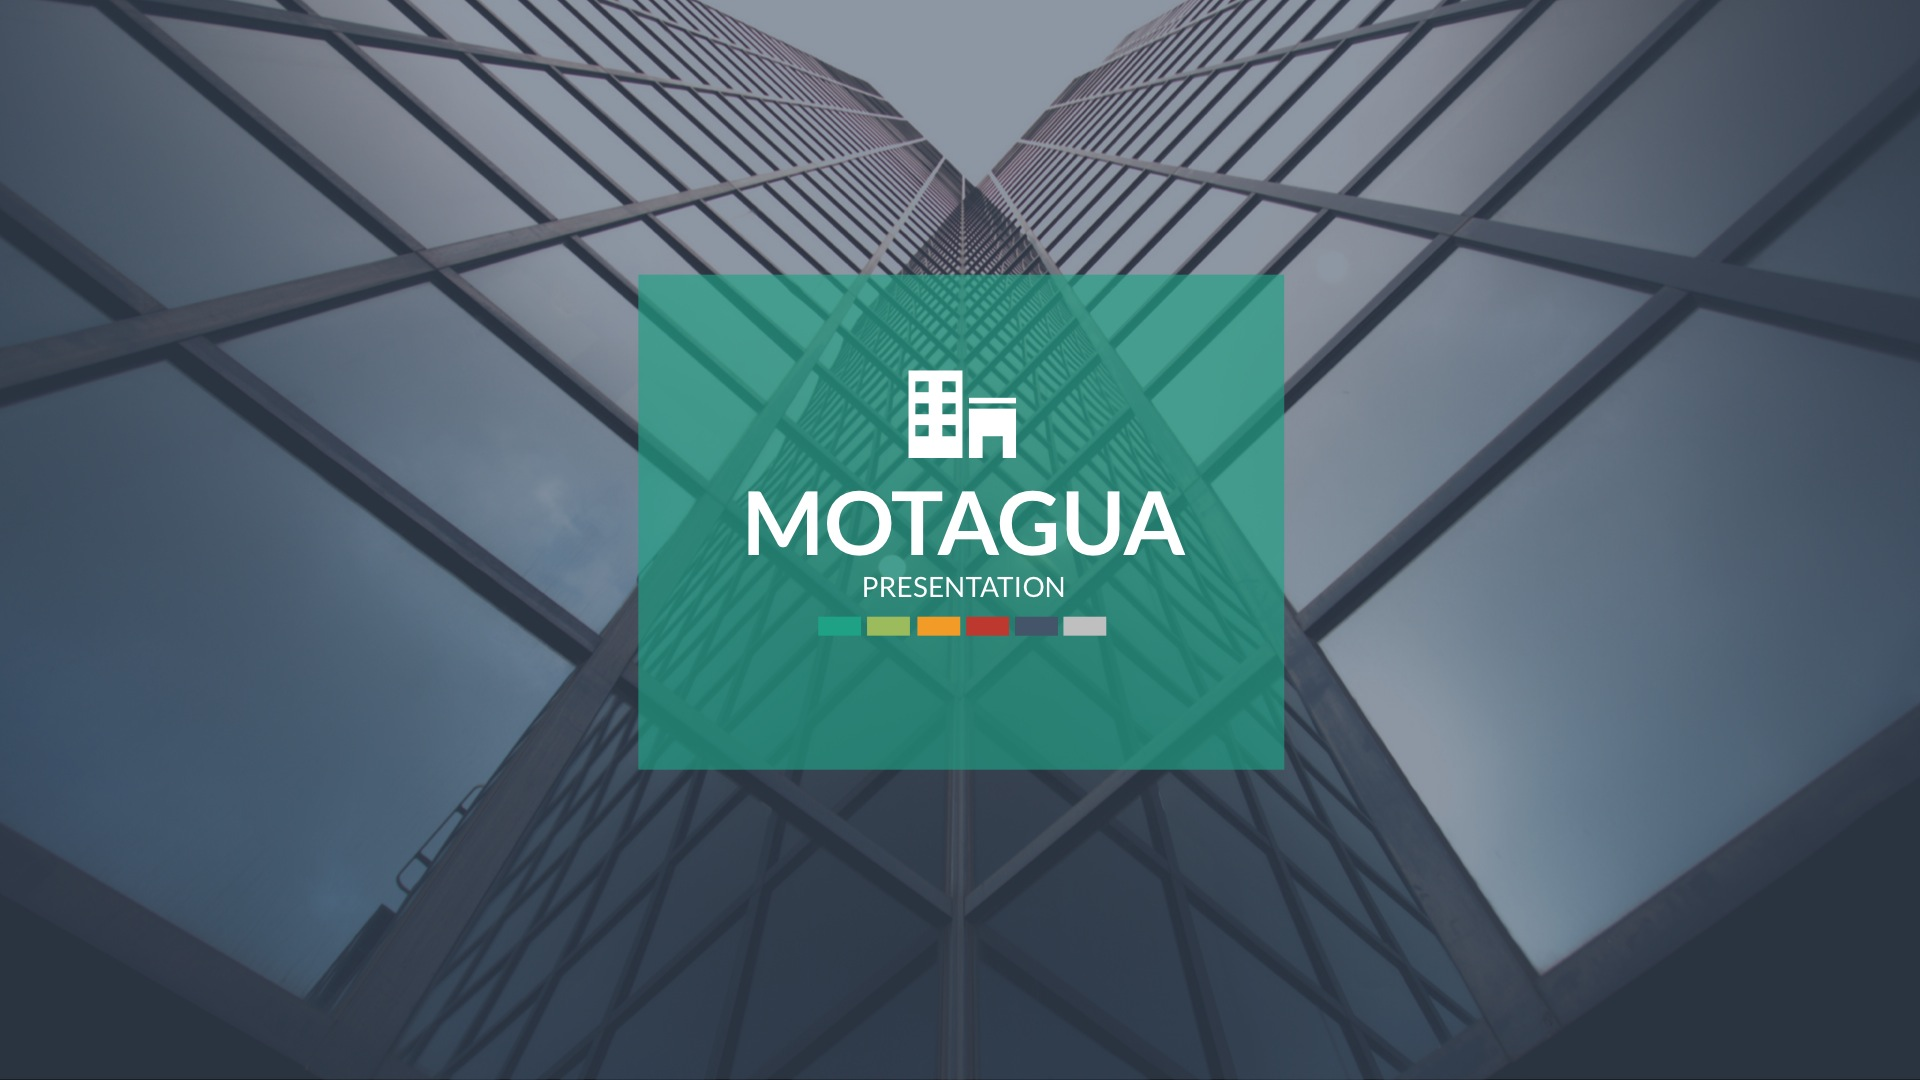 10 powerpoint business templates to wow your audience the multipurpose powerpoint business template from motagua wajeb